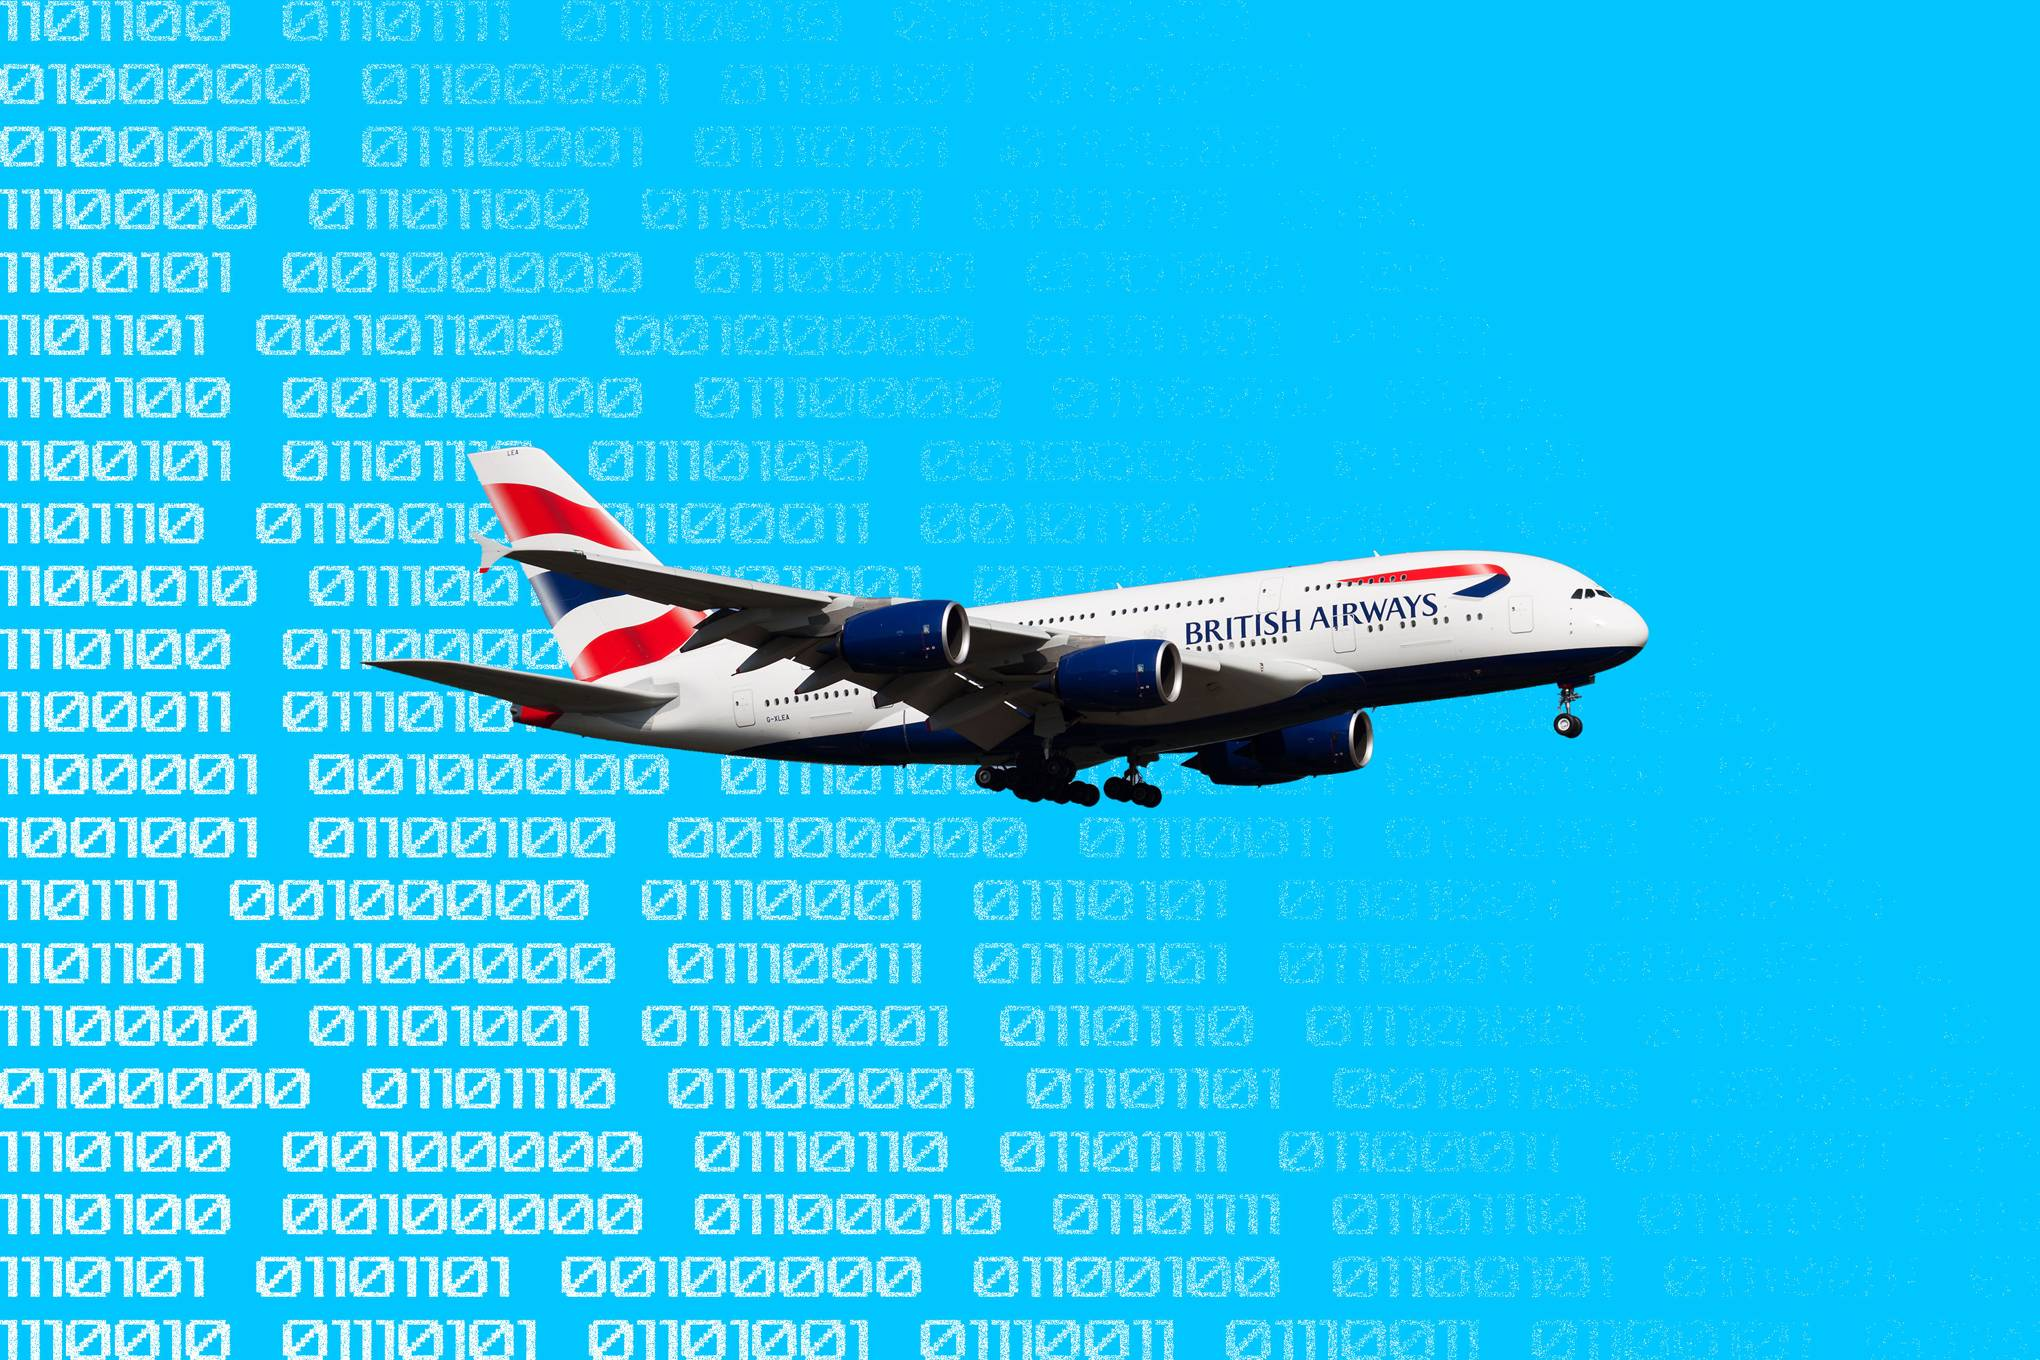 A simple fix could have saved British Airways from its data breach